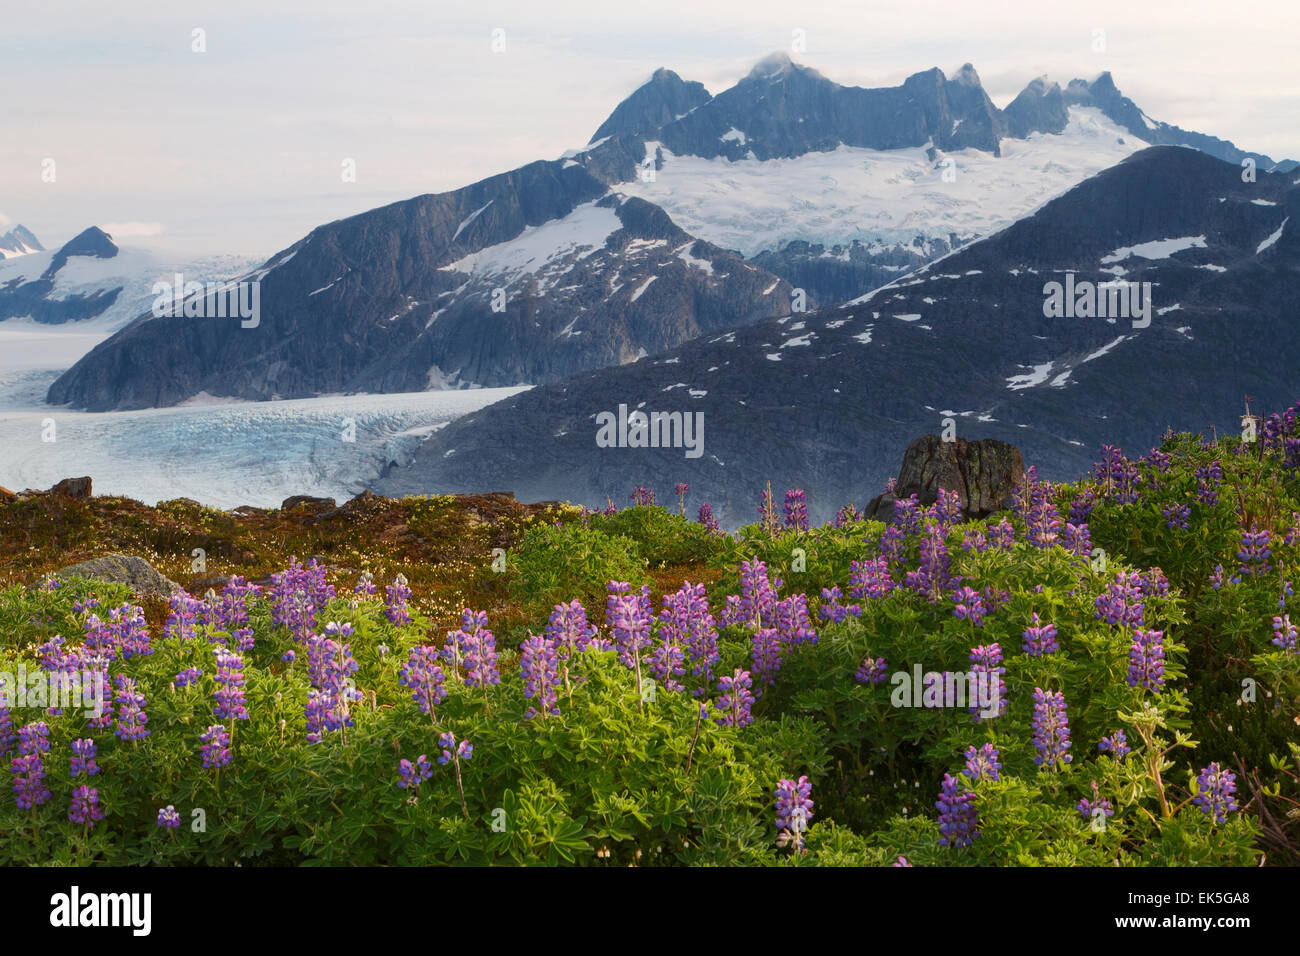 From Mount Stroller White above the Mendenhall Glacier, Tongass National Forest, Alaska - Stock Image